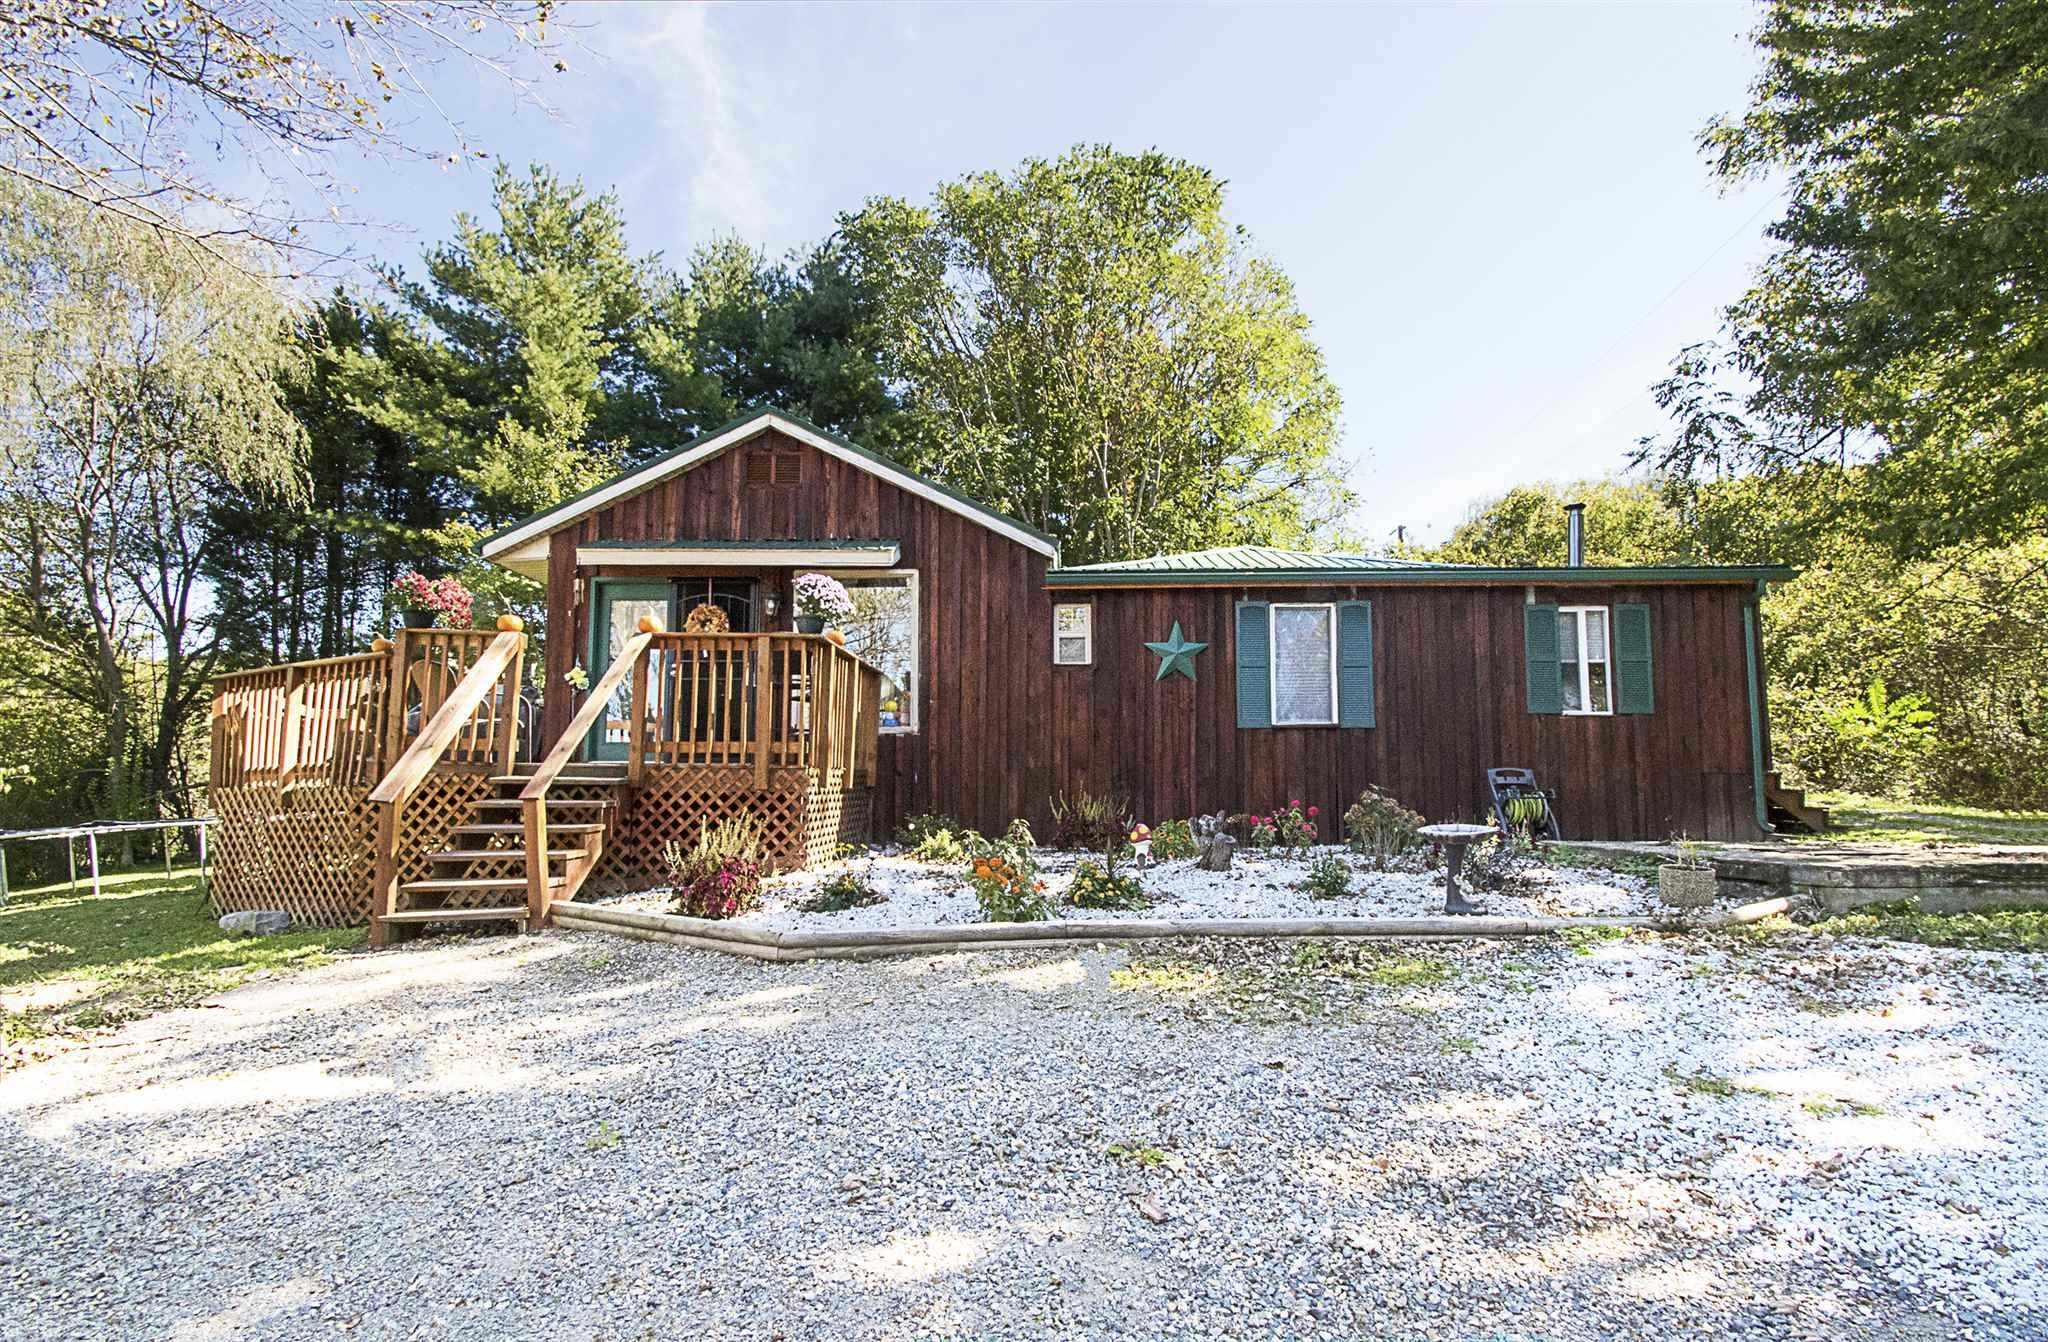 Cozy two bedroom house on 15 acres. Great mountain view! Lovely hardwood floors. Remolded kitchen and bathrooms. One level living. Large Deck and yard with plenty of space for outdoor entertainment. New metal roof in 2018 and multiple storage buildings.